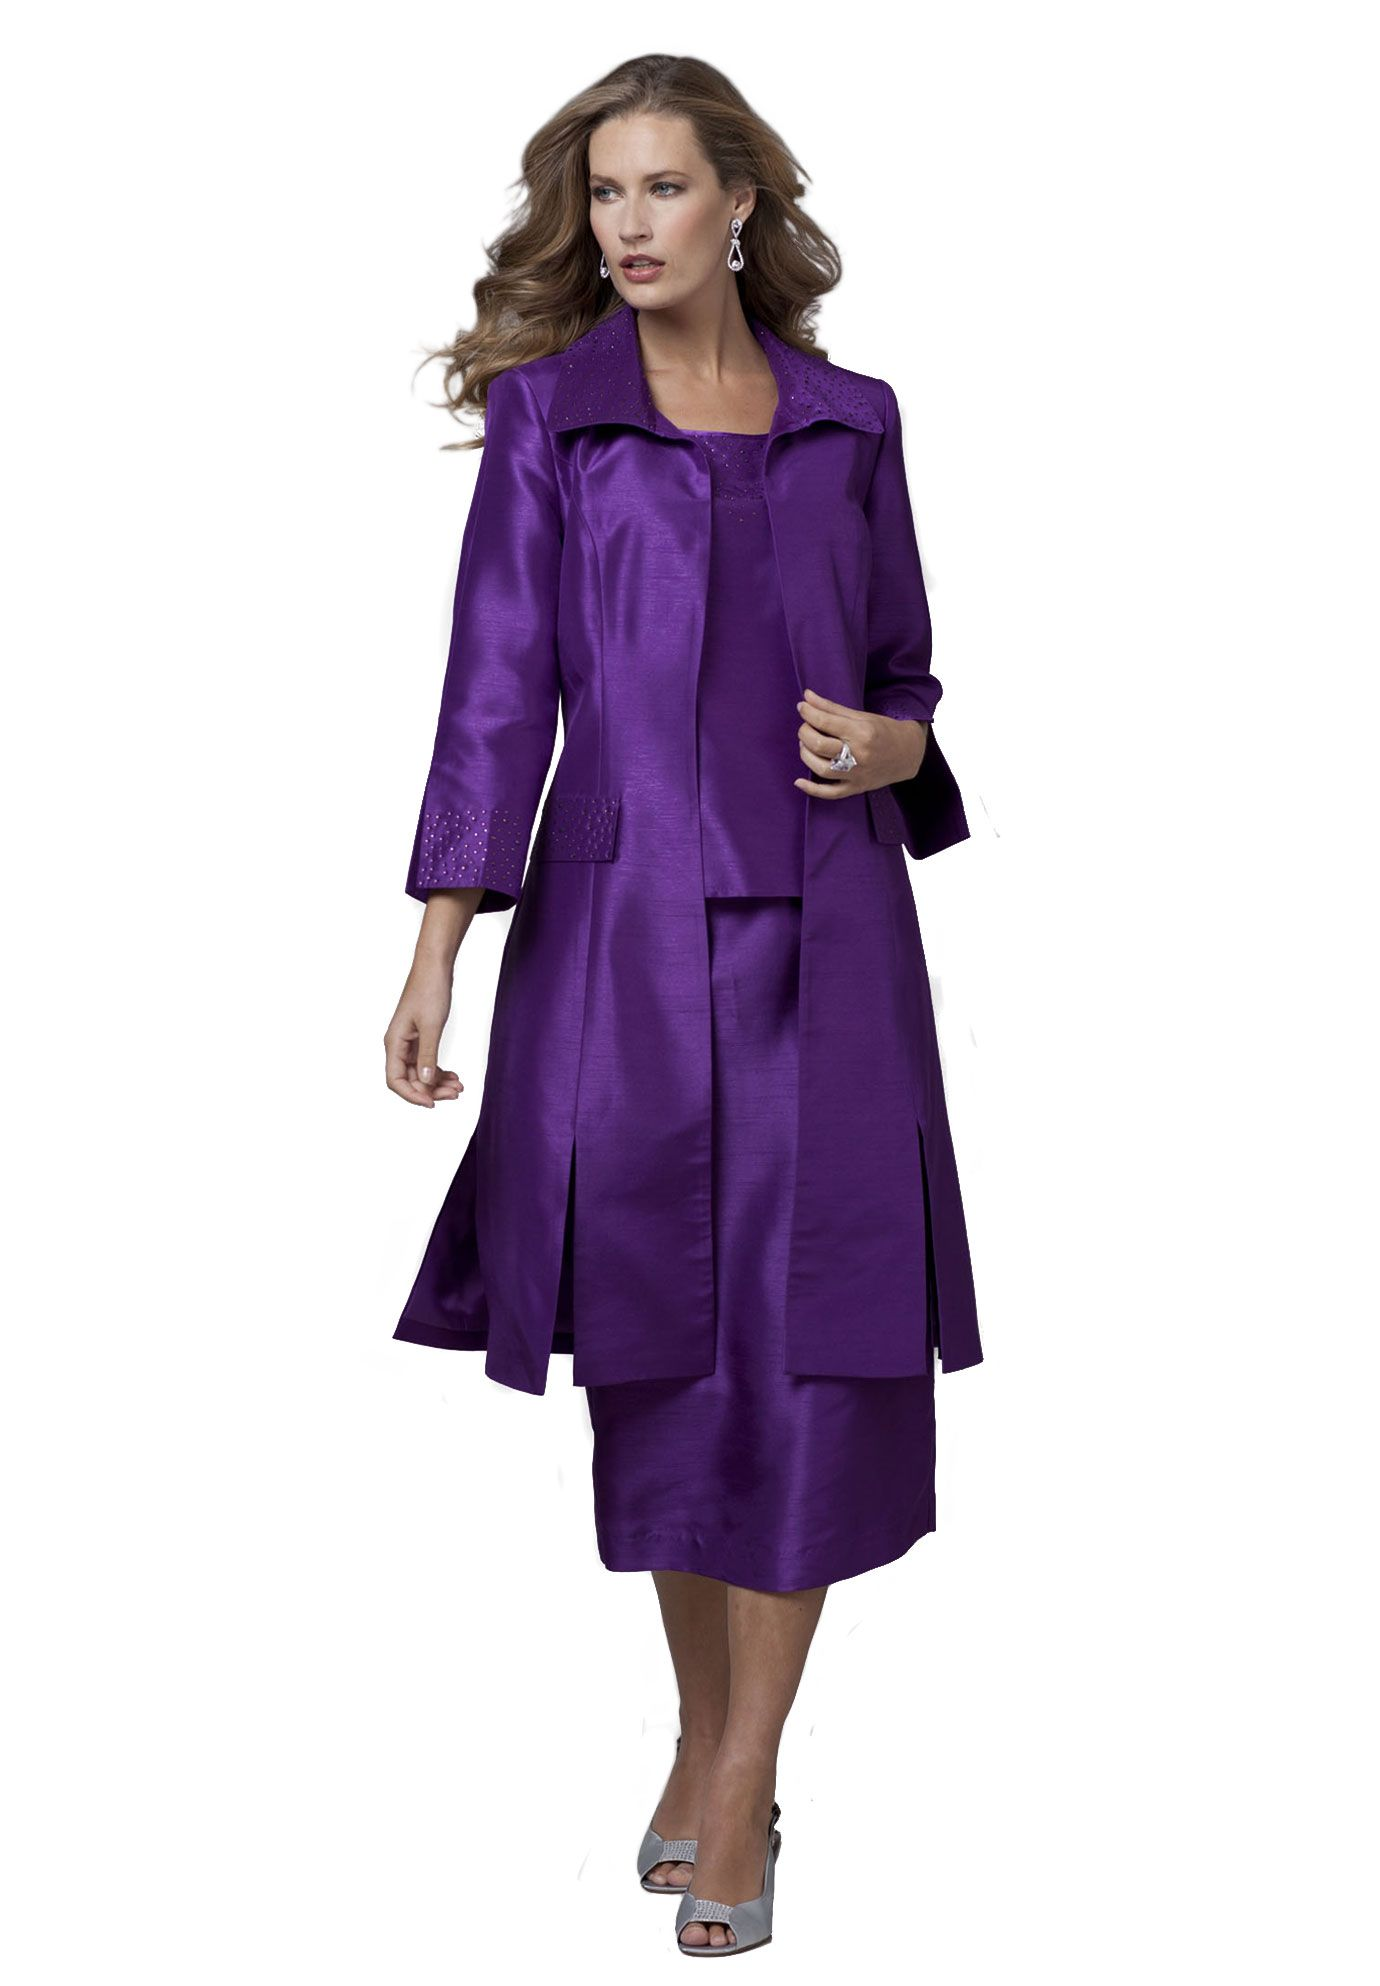 3-Piece Carwash Skirt Suit | Plus Size Special Occasion ...